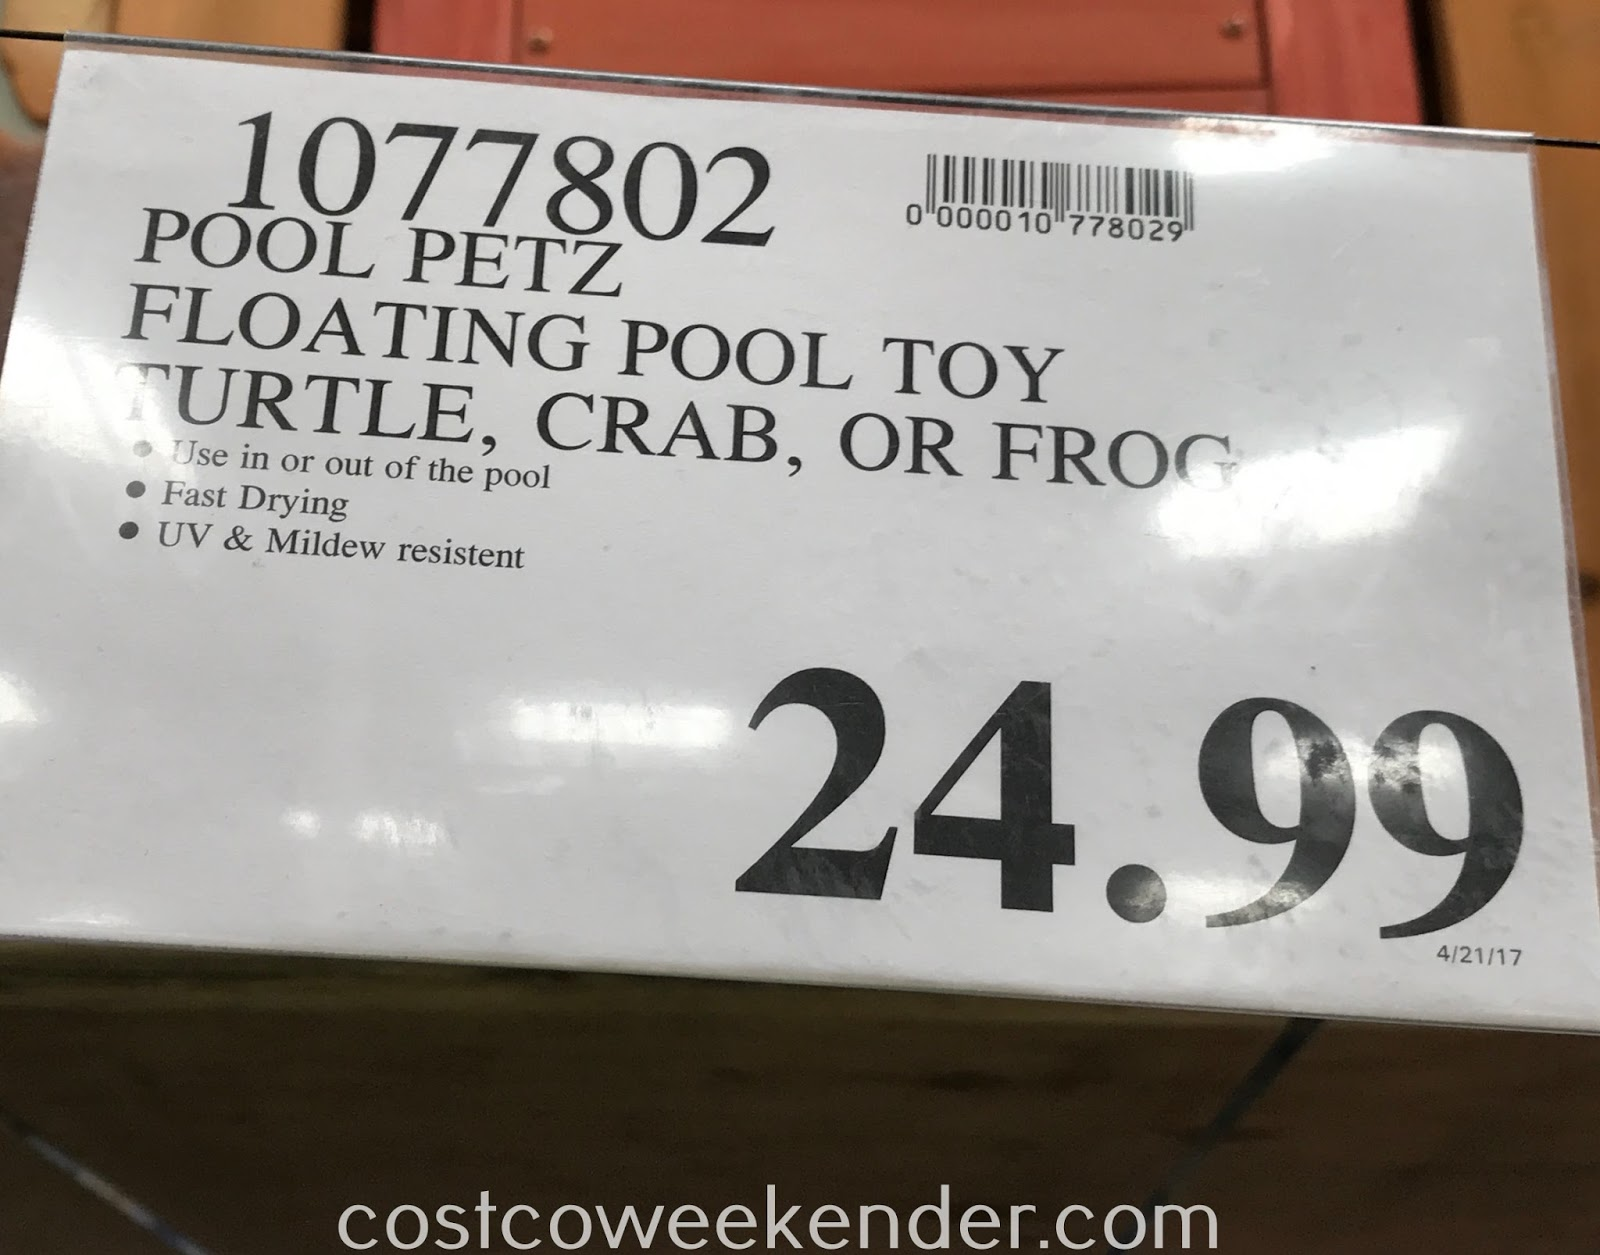 Deal for the Pool Petz Floating Pool Toy at Costco